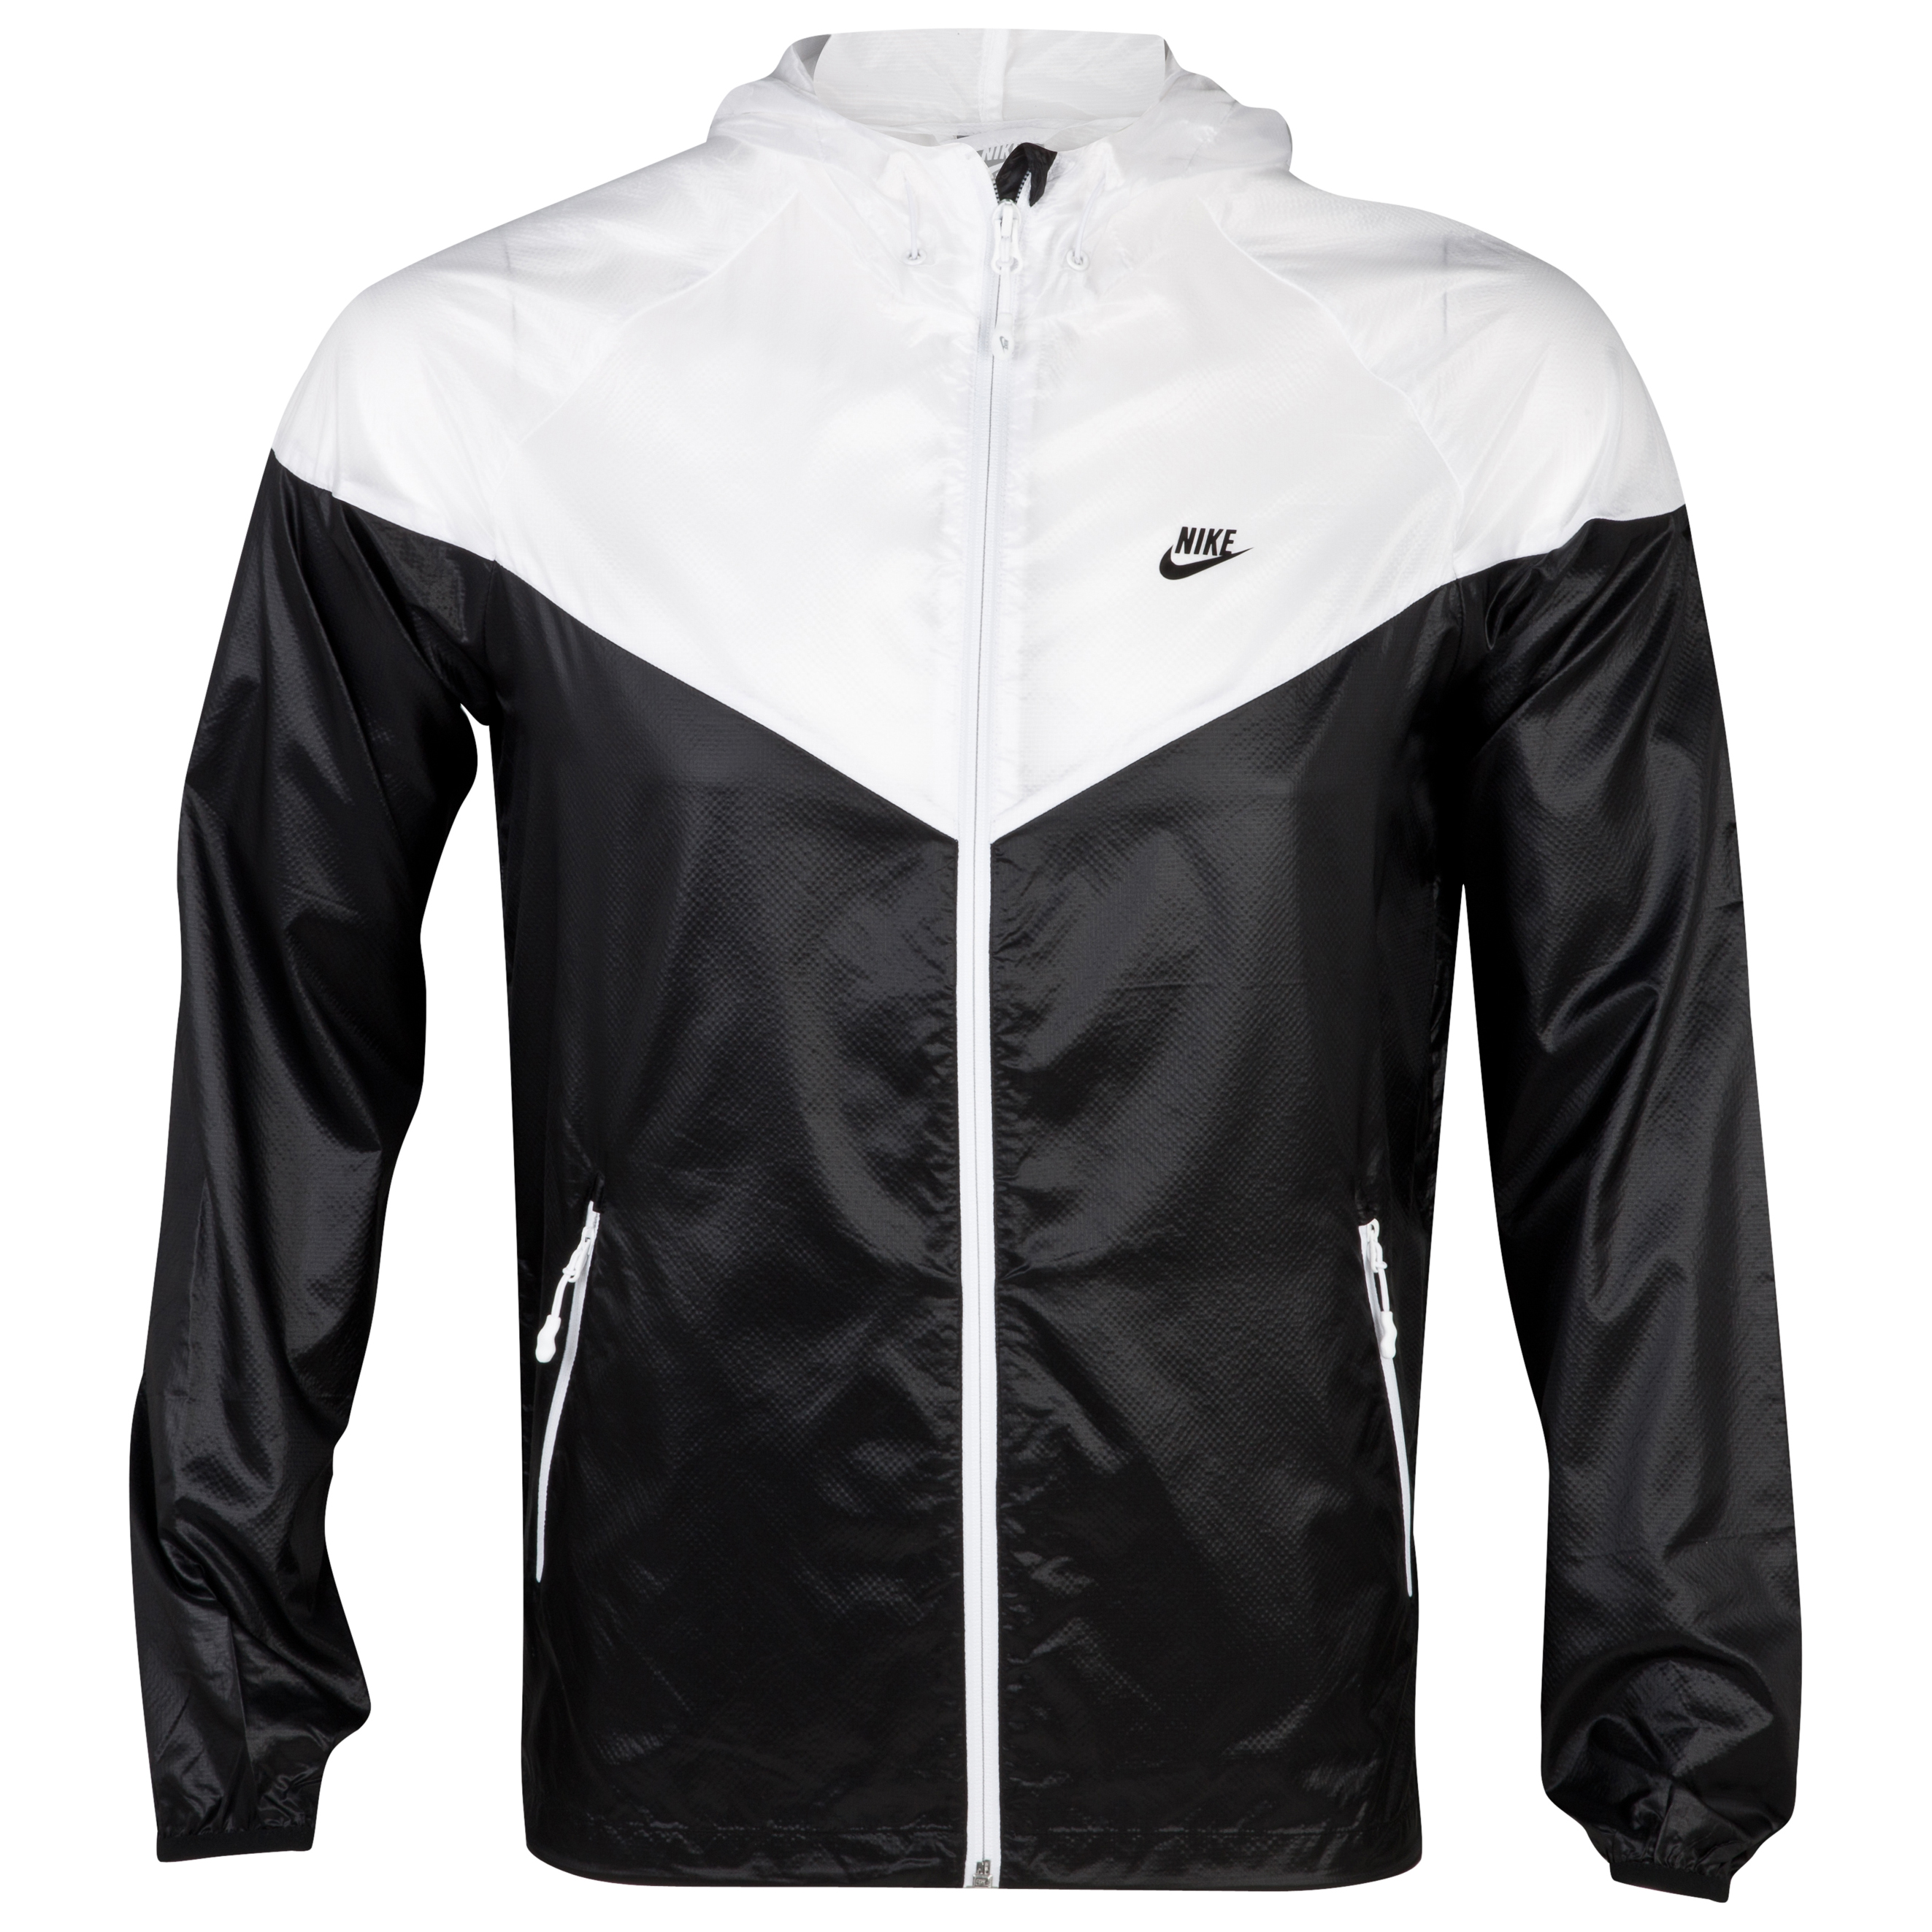 Nike Summerized Windrunner - Black/White